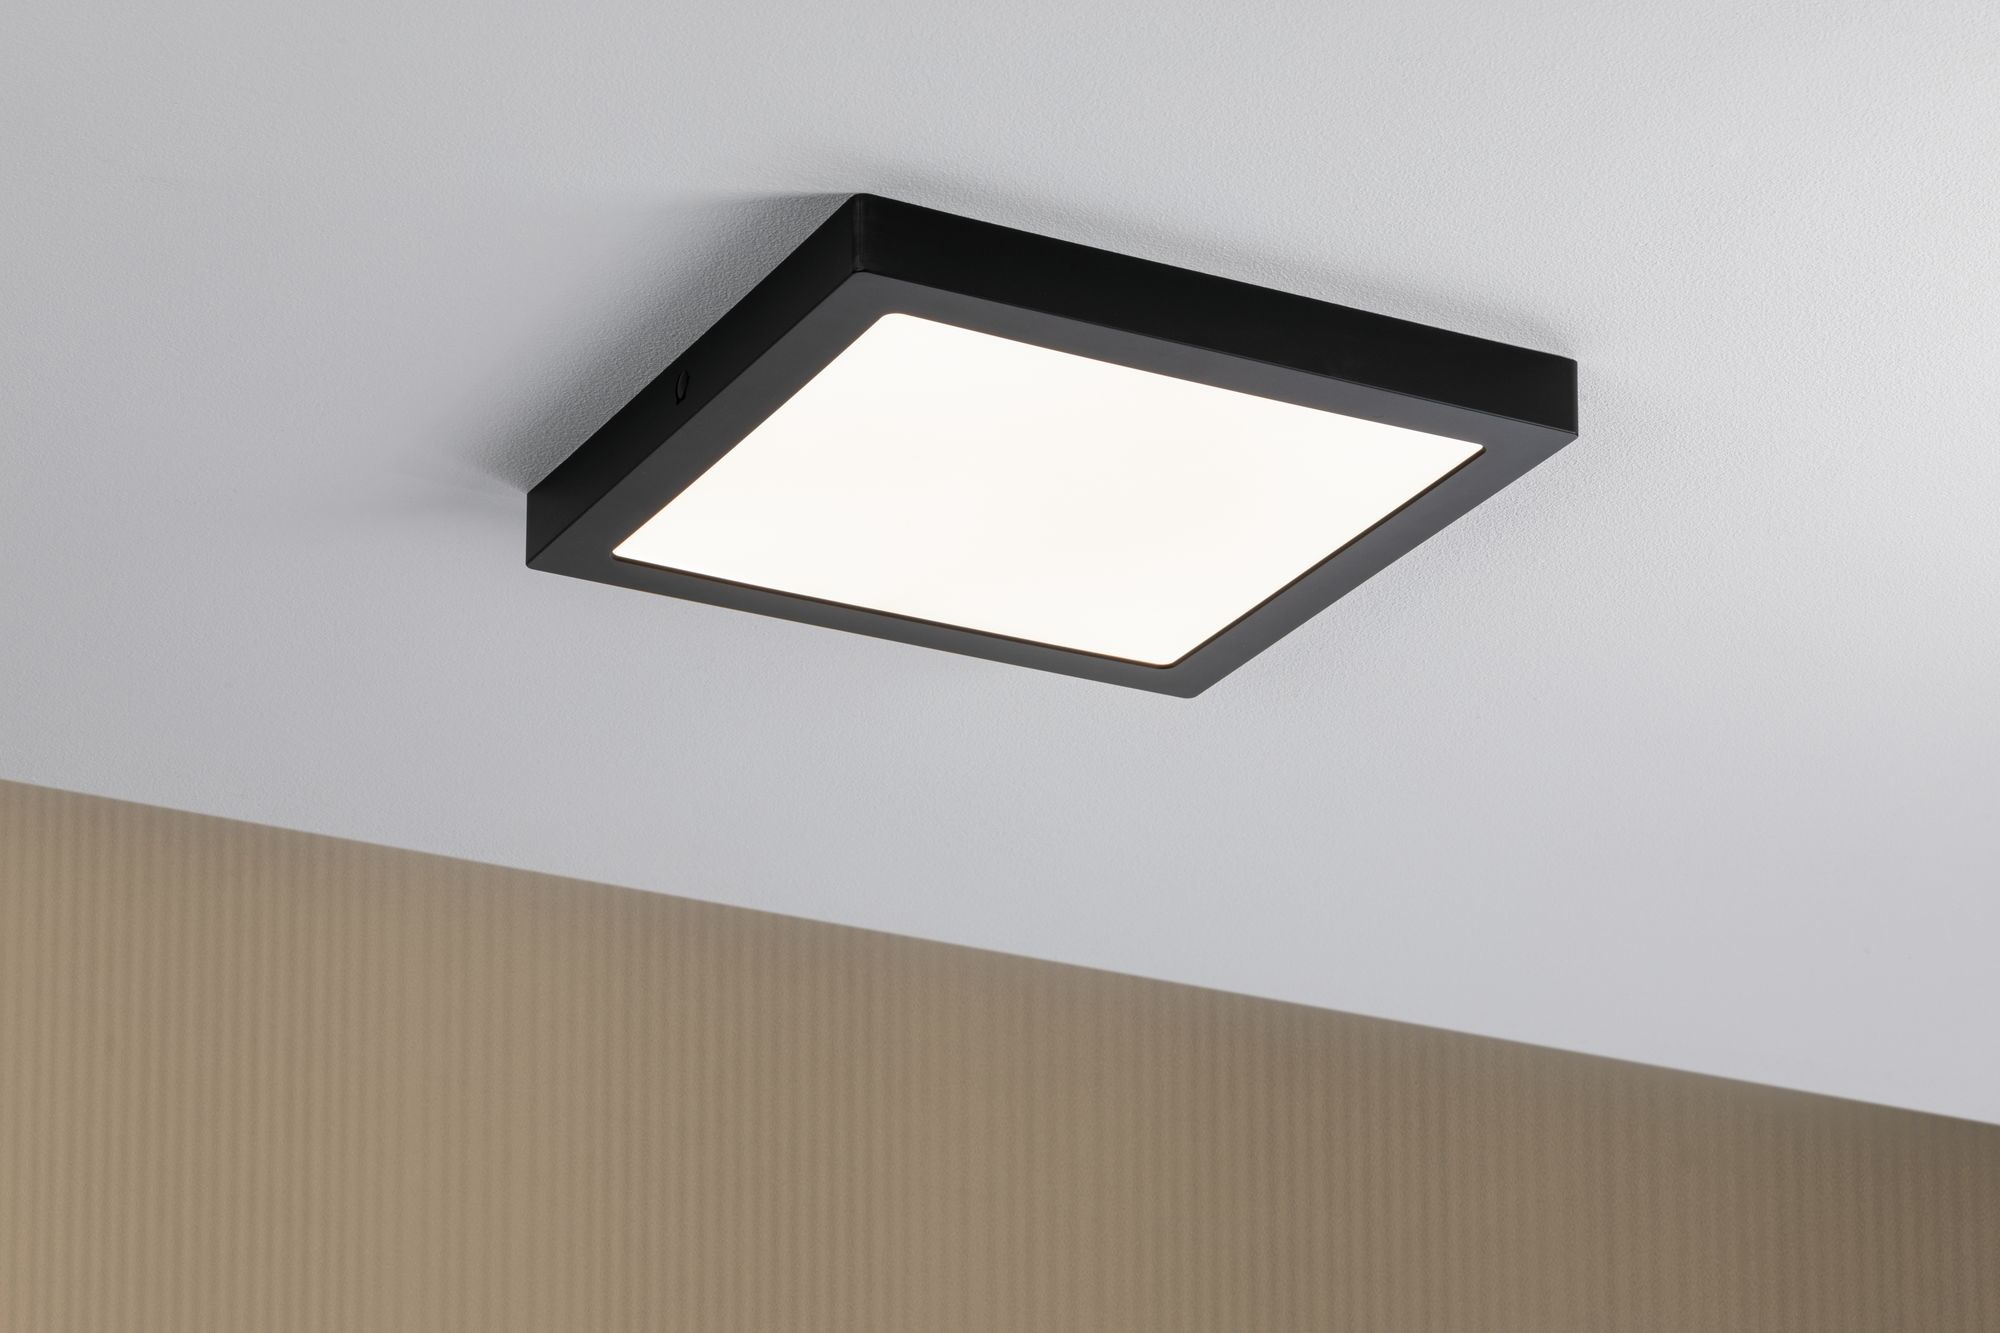 Paulmann LED Panel Abia eckig 300x300mm 22W 2.700K Schwarz matt